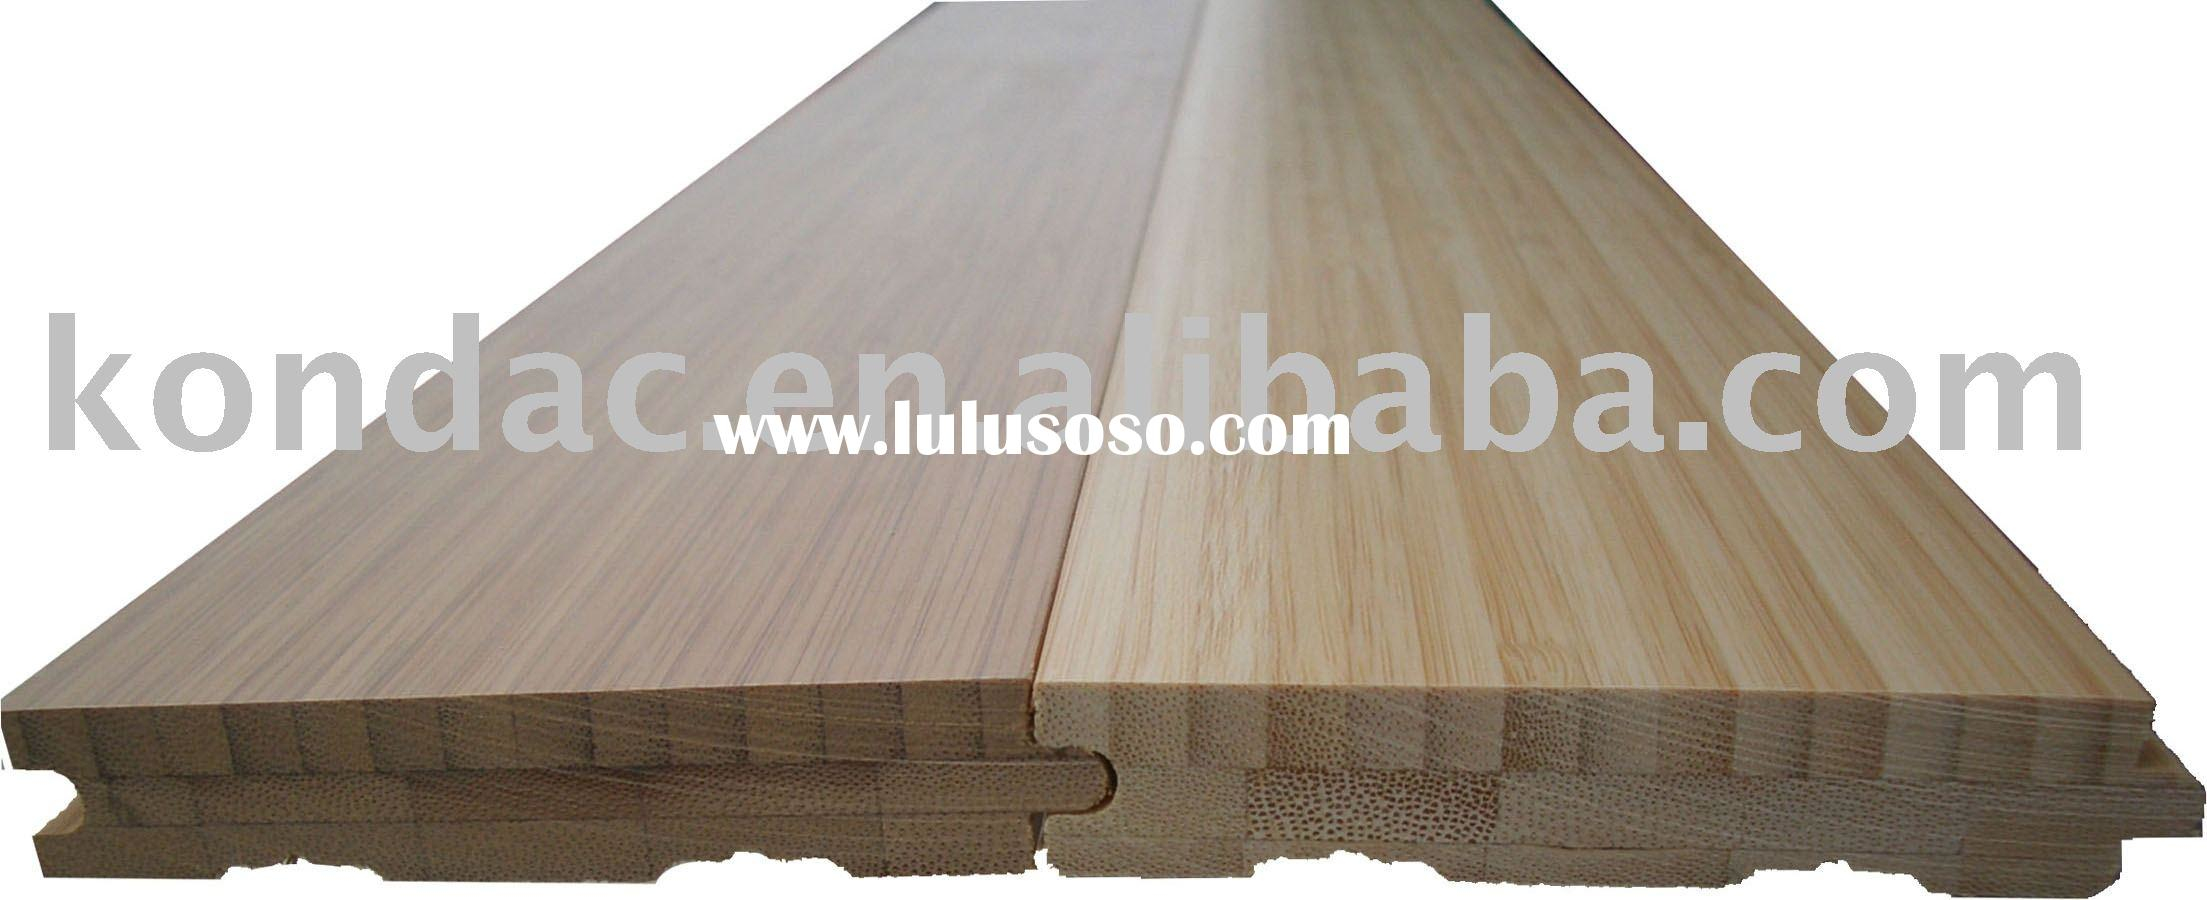 wide plank bamboo flooring cali bamboo flooring reviews hardest wood flooring